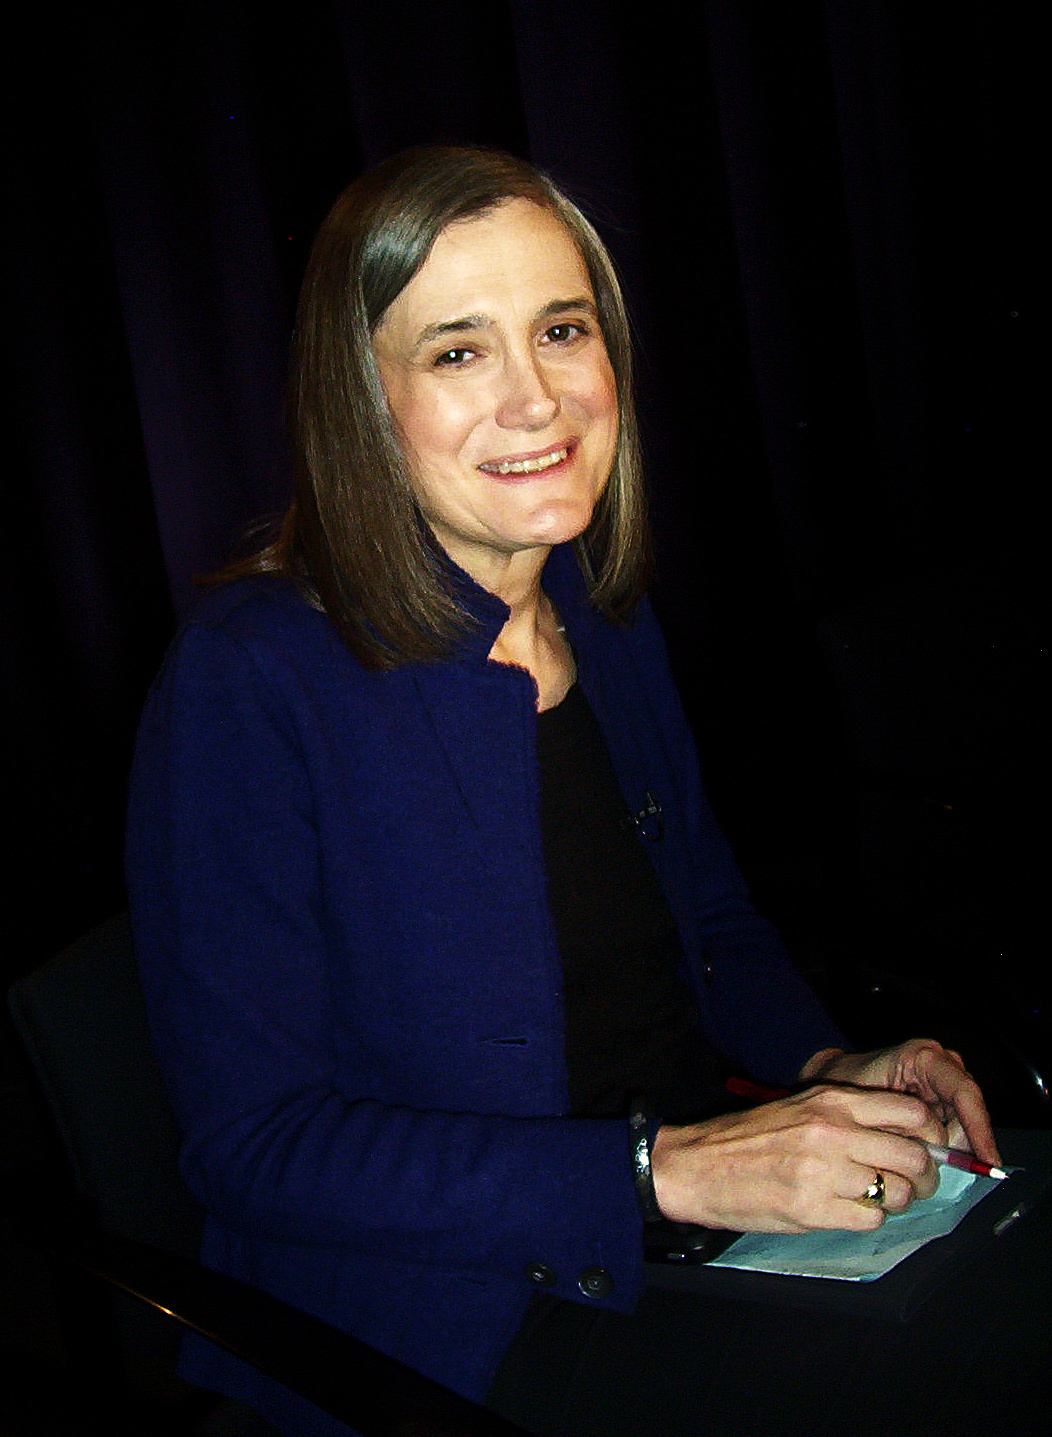 Concerned About the Health of Amy Goodman -